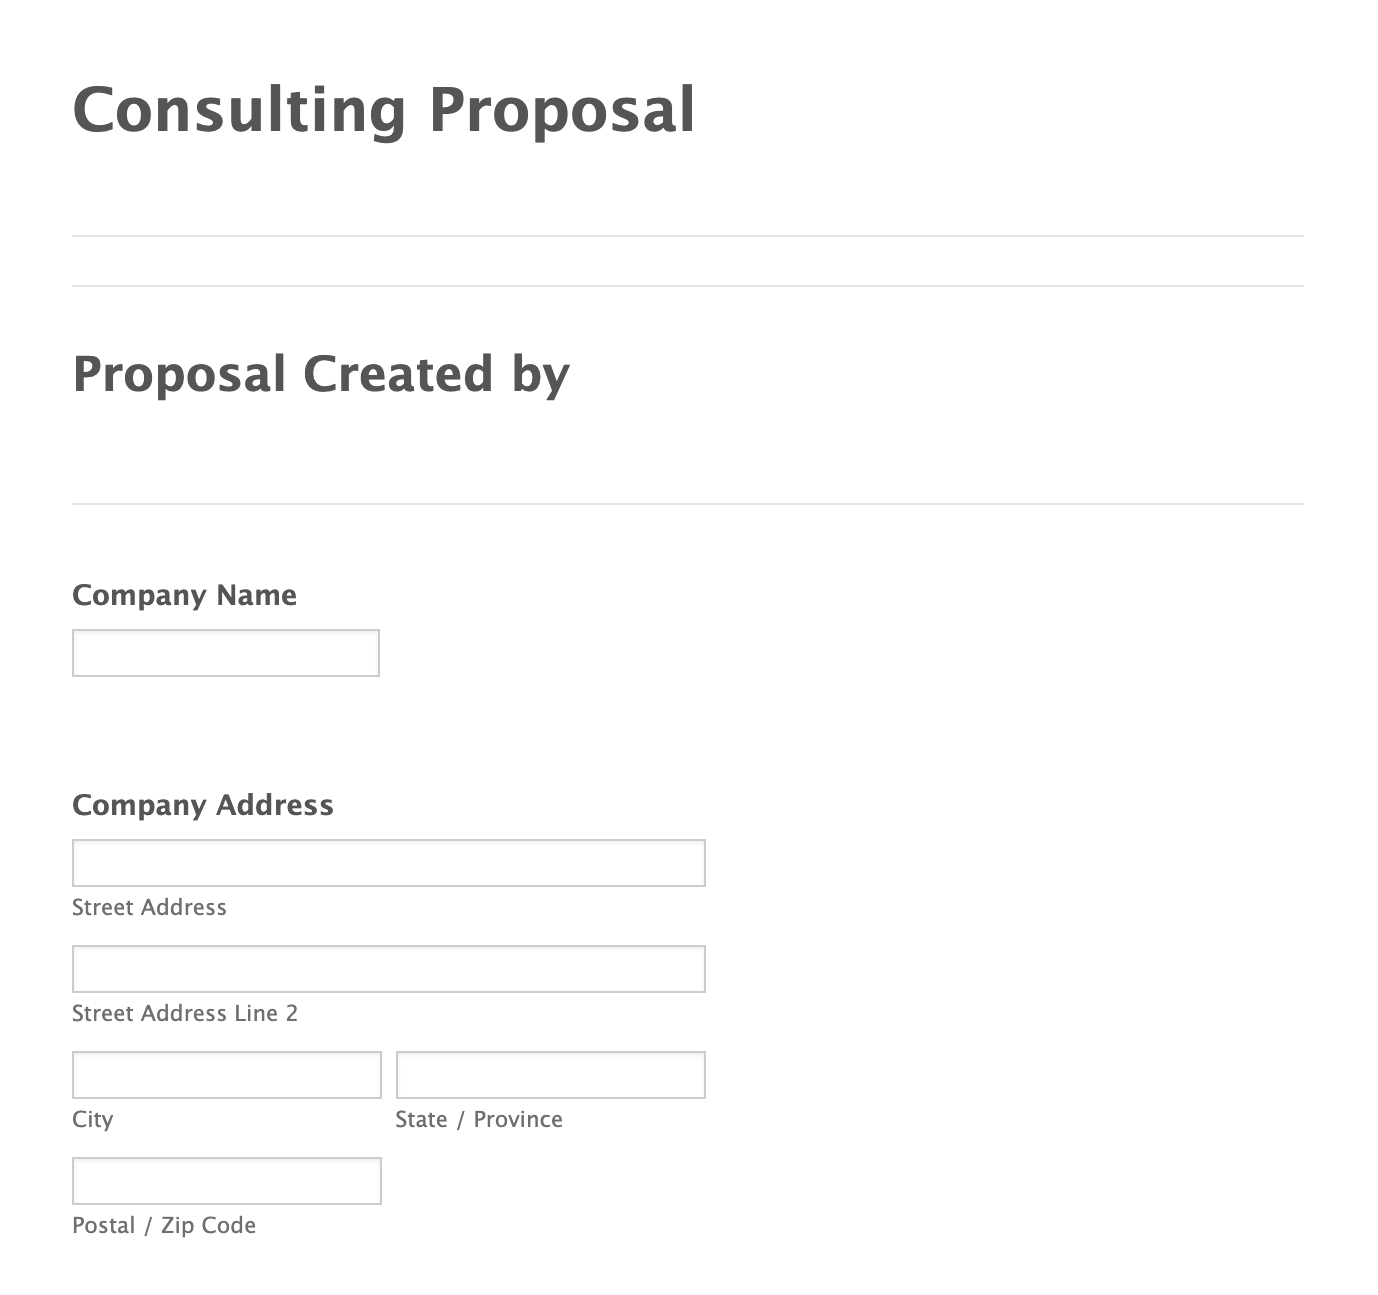 JotForm's Consulting Proposal Form Template